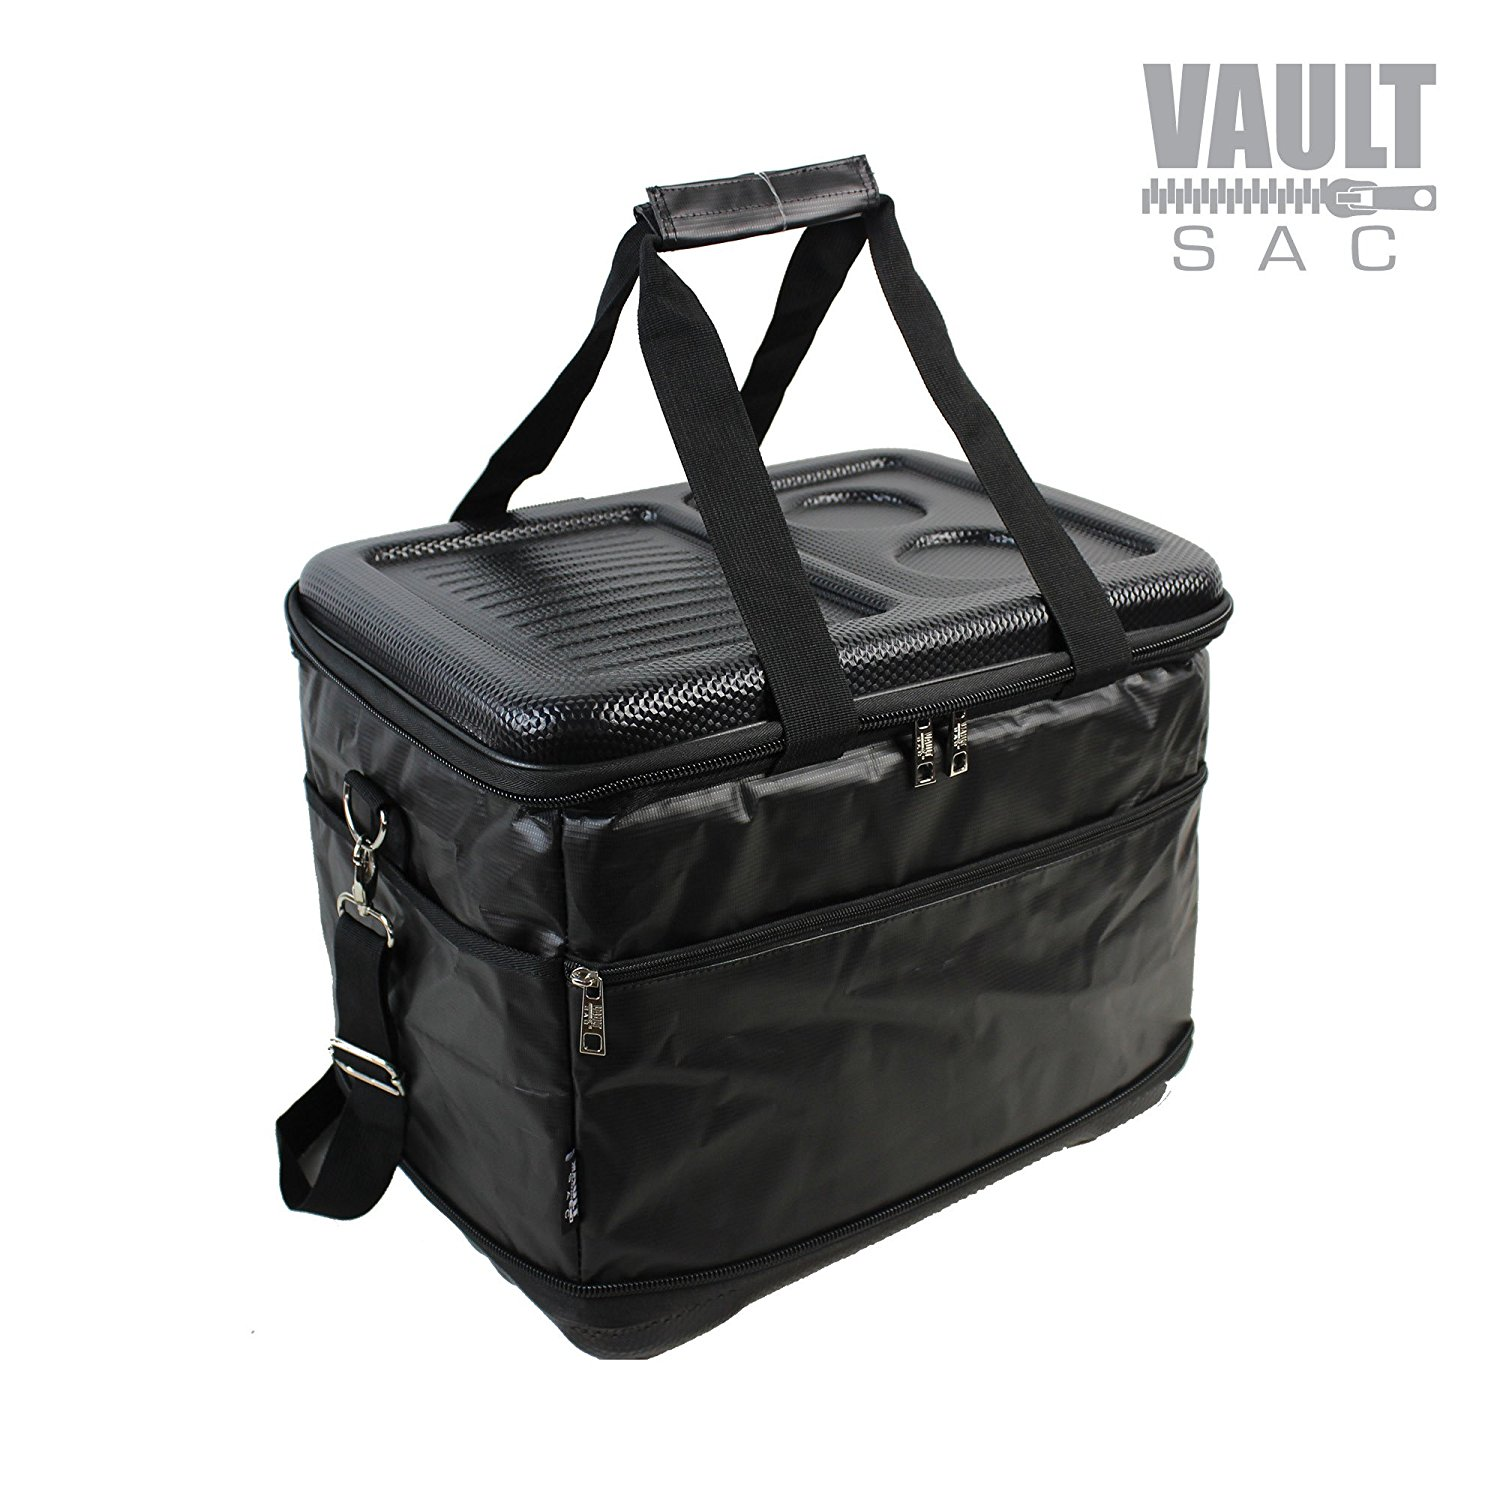 6ad0e84a671b Vaultsac - COOLER-BLACK-30 - Collapsible Folding Insulated Cooler ...